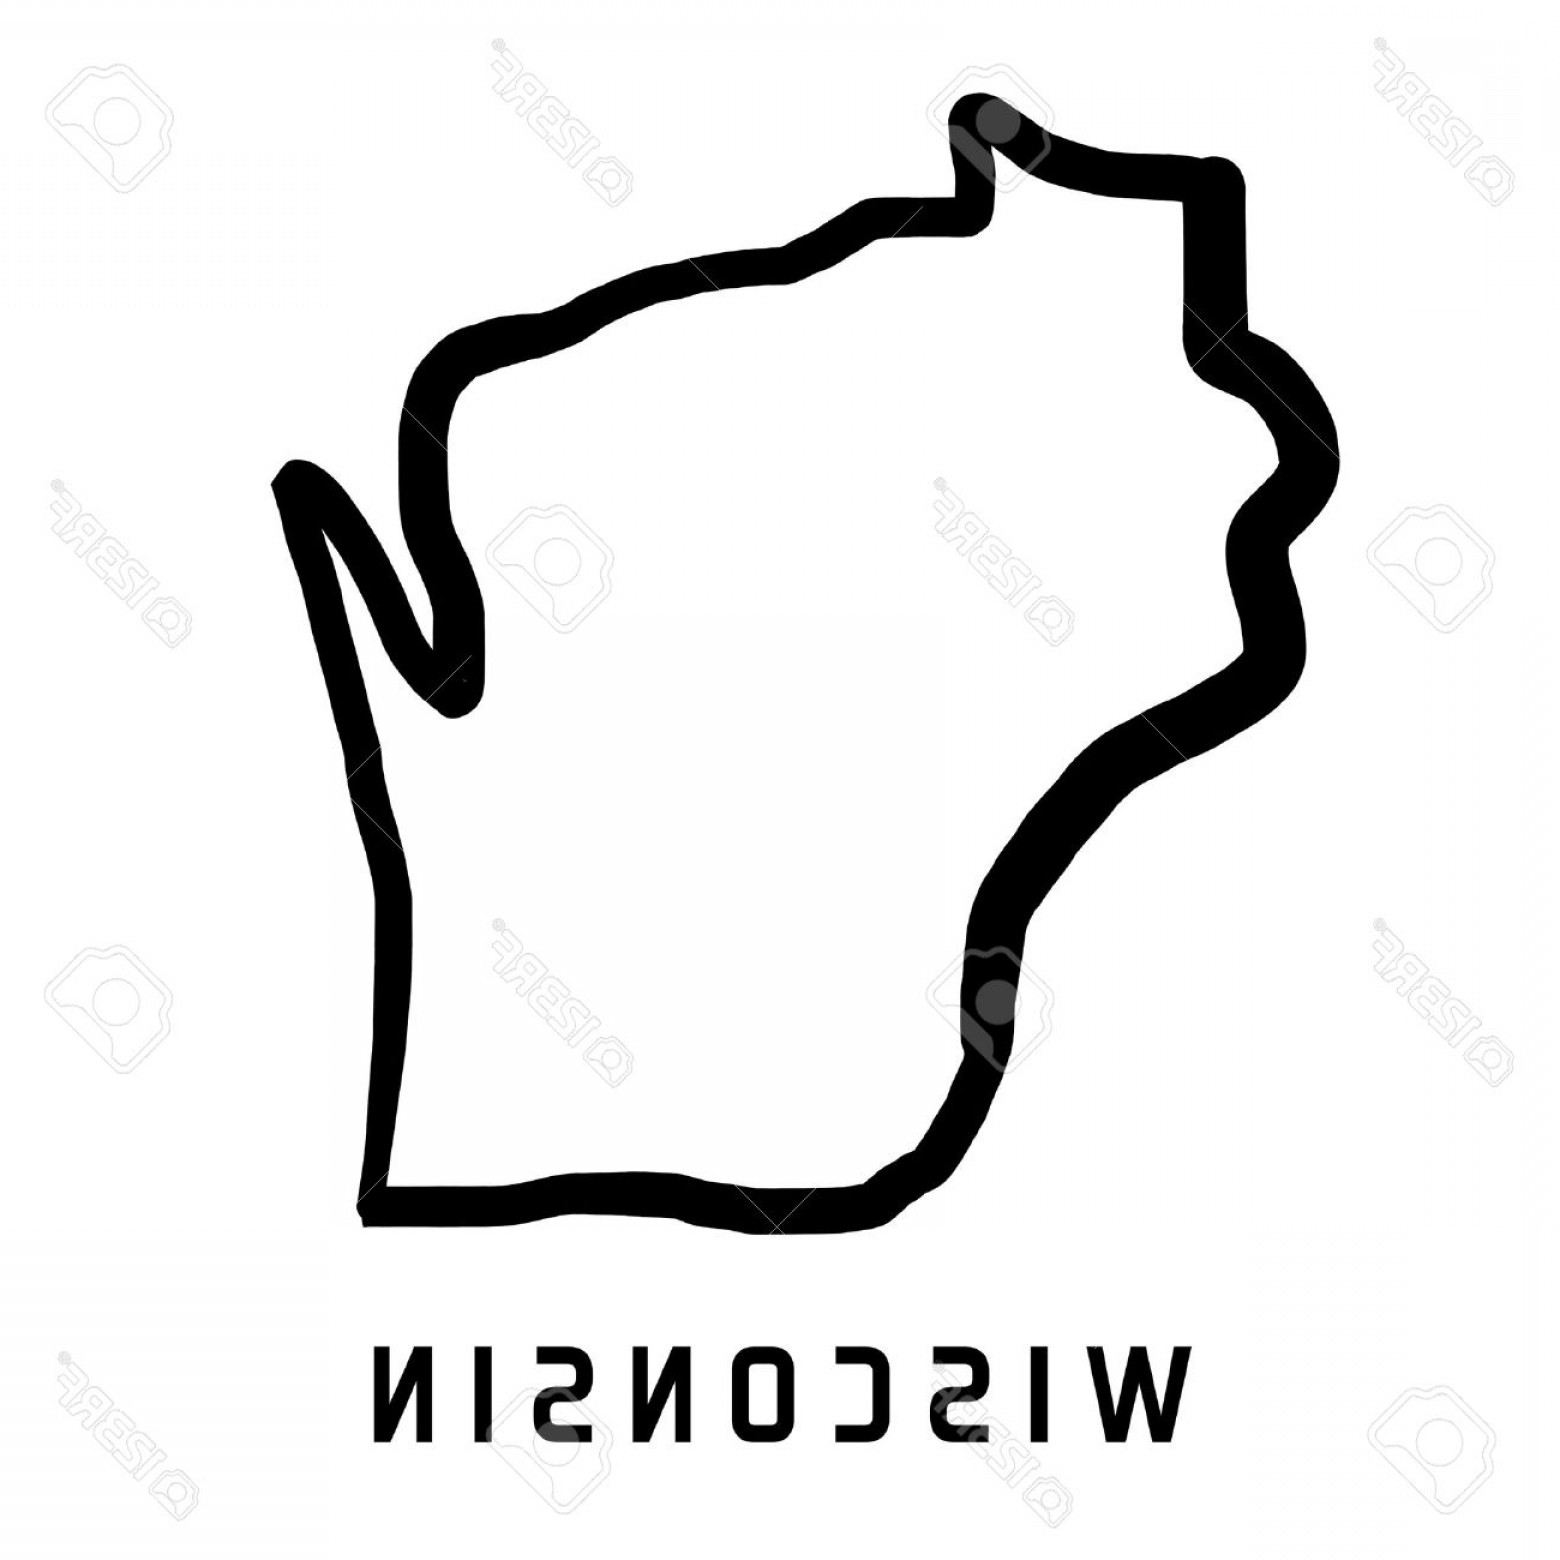 1560x1560 Photostock Vector Wisconsin Map Outline Smooth Simplified Us State